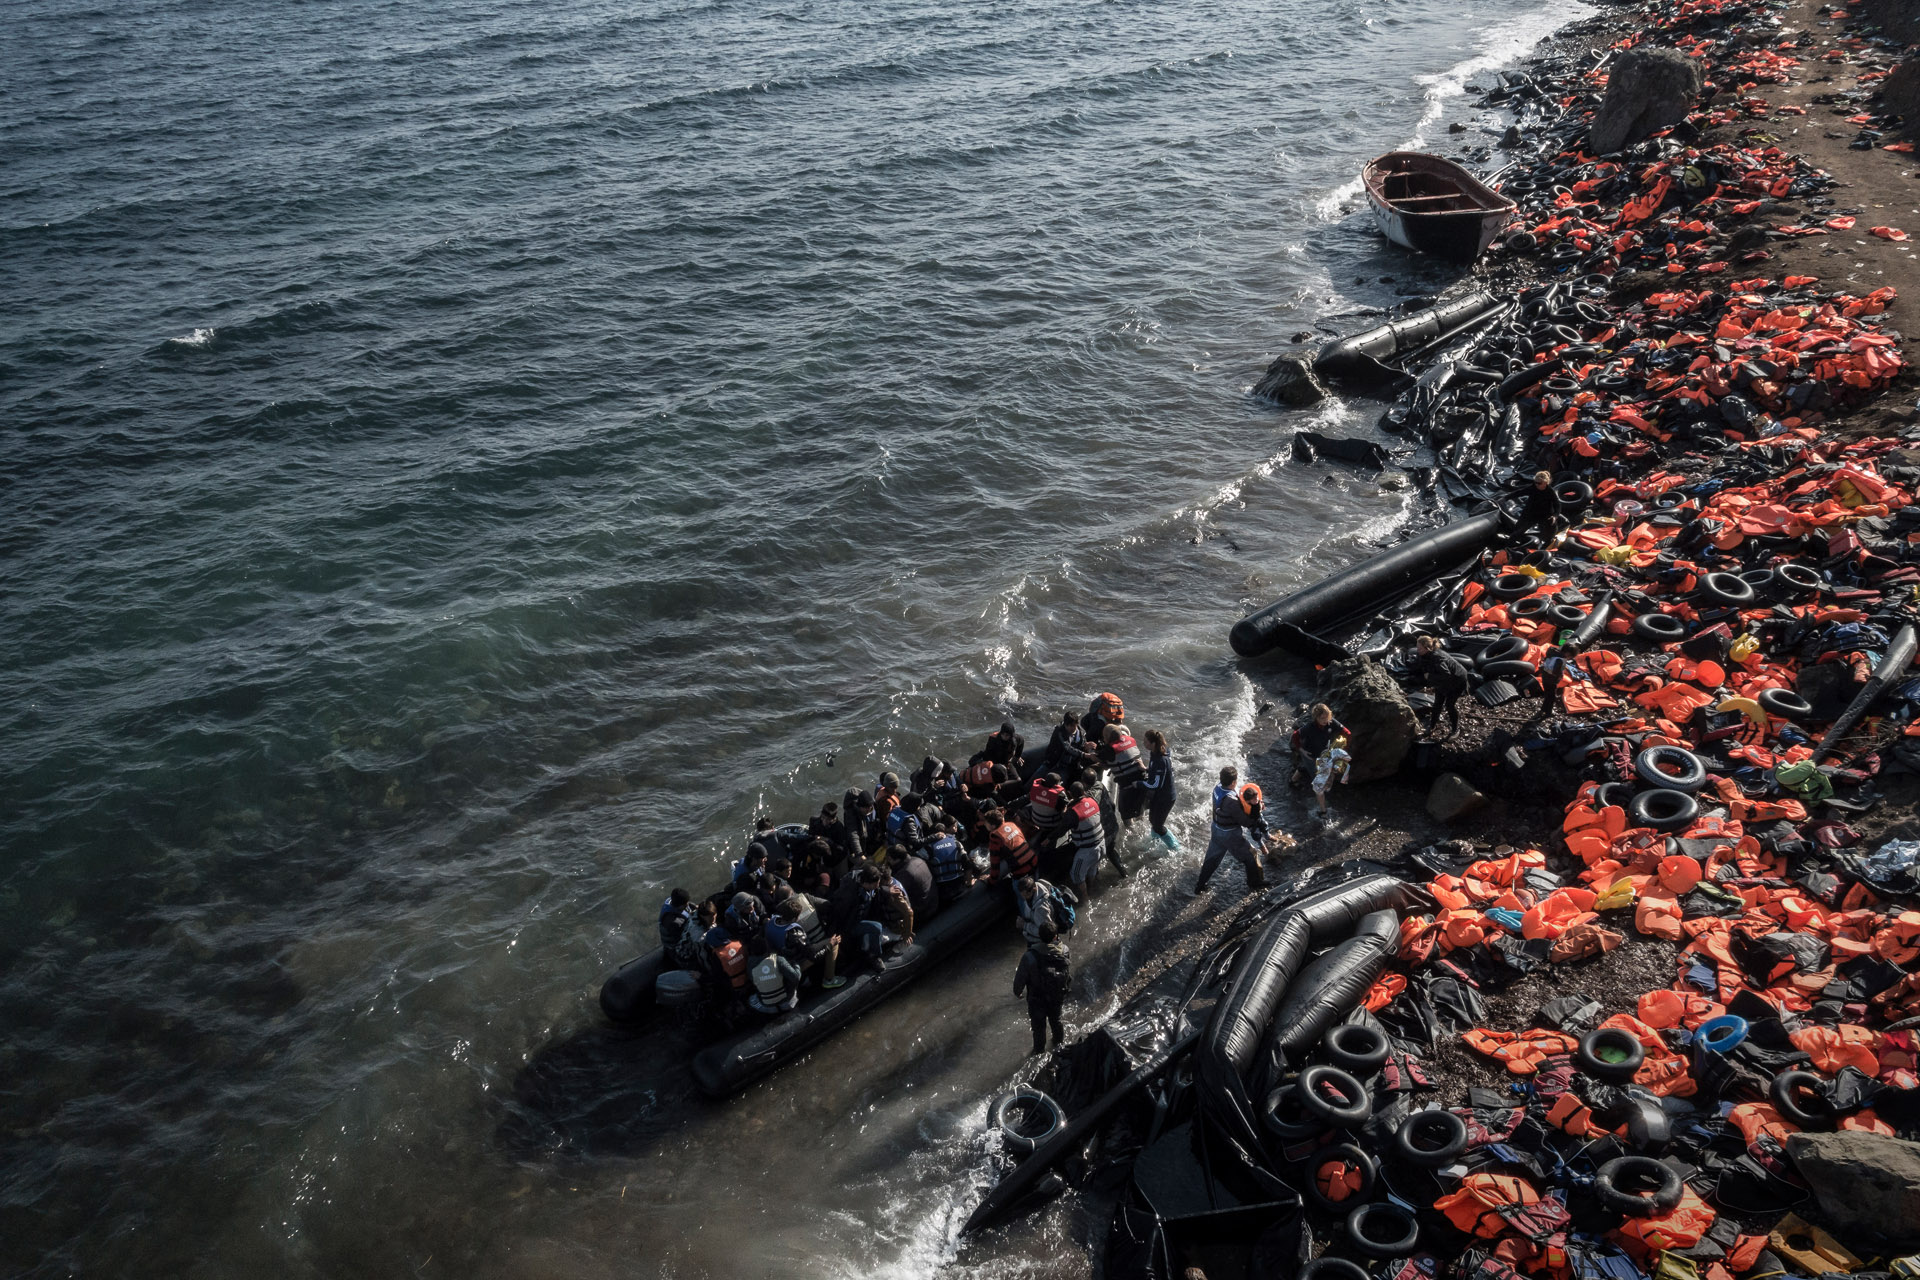 Refugees and migrants arrive on the shore in Greece.